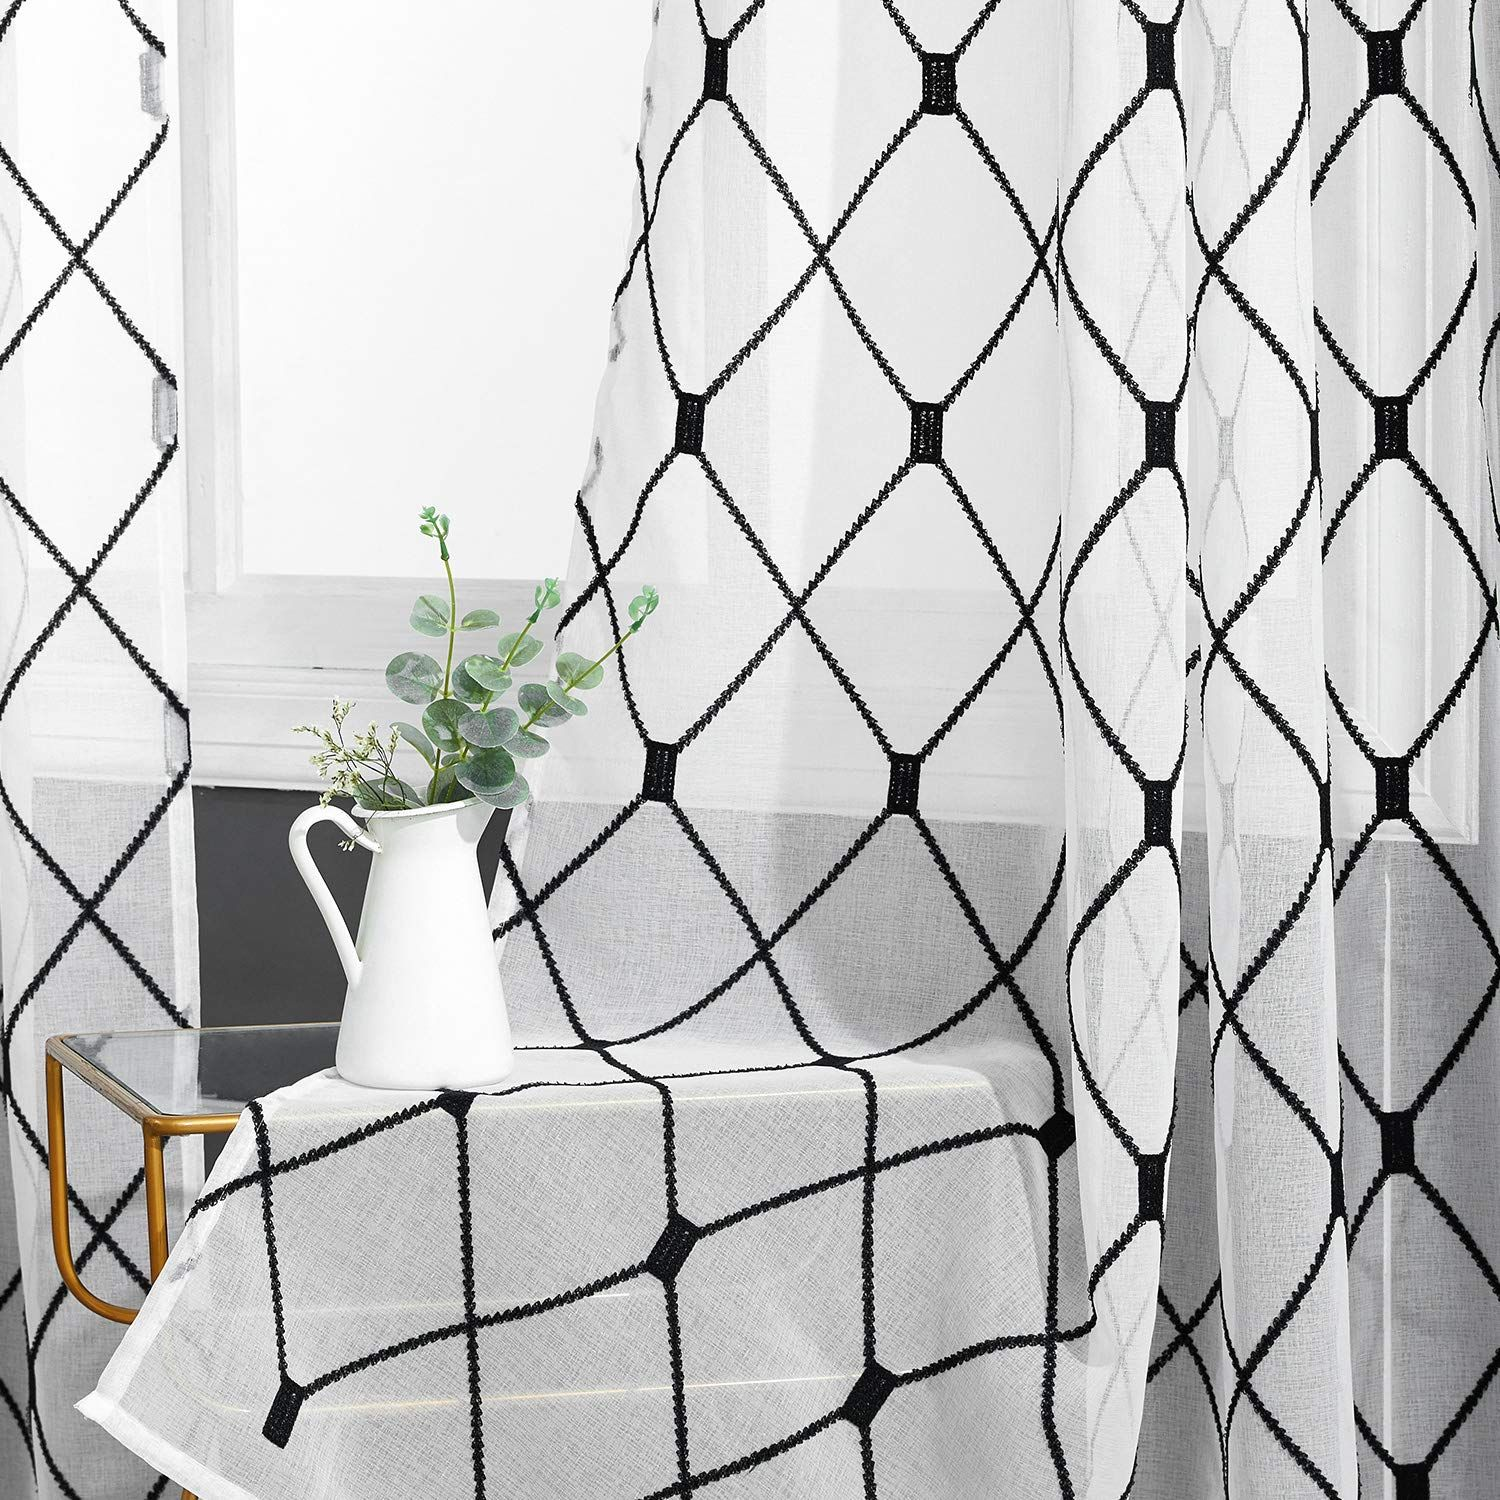 Top Finel White Sheer Curtains 96 Inches Long Black Embroidered Diamond Grommet Window Cur White Sheer Curtains Navy And White Curtains Blue And White Curtains